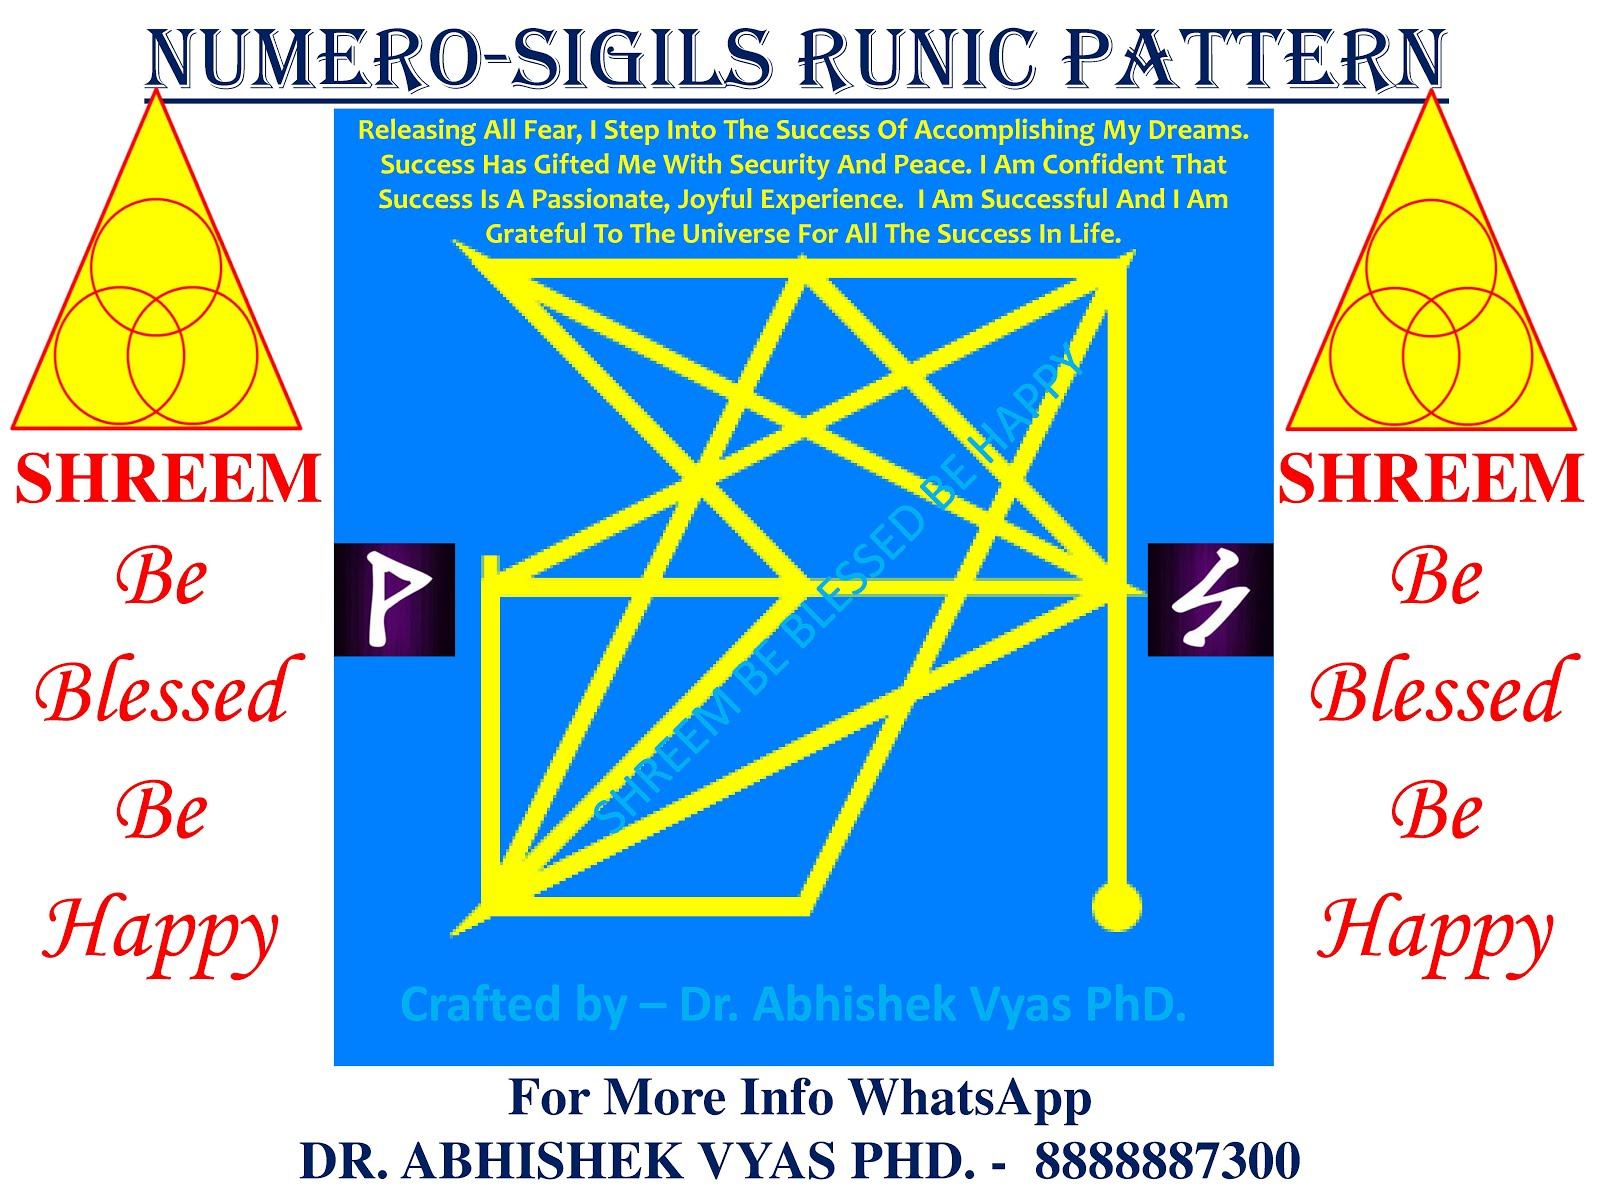 Free Universal Numero-Sigil Runic Pattern To Release Fear Of